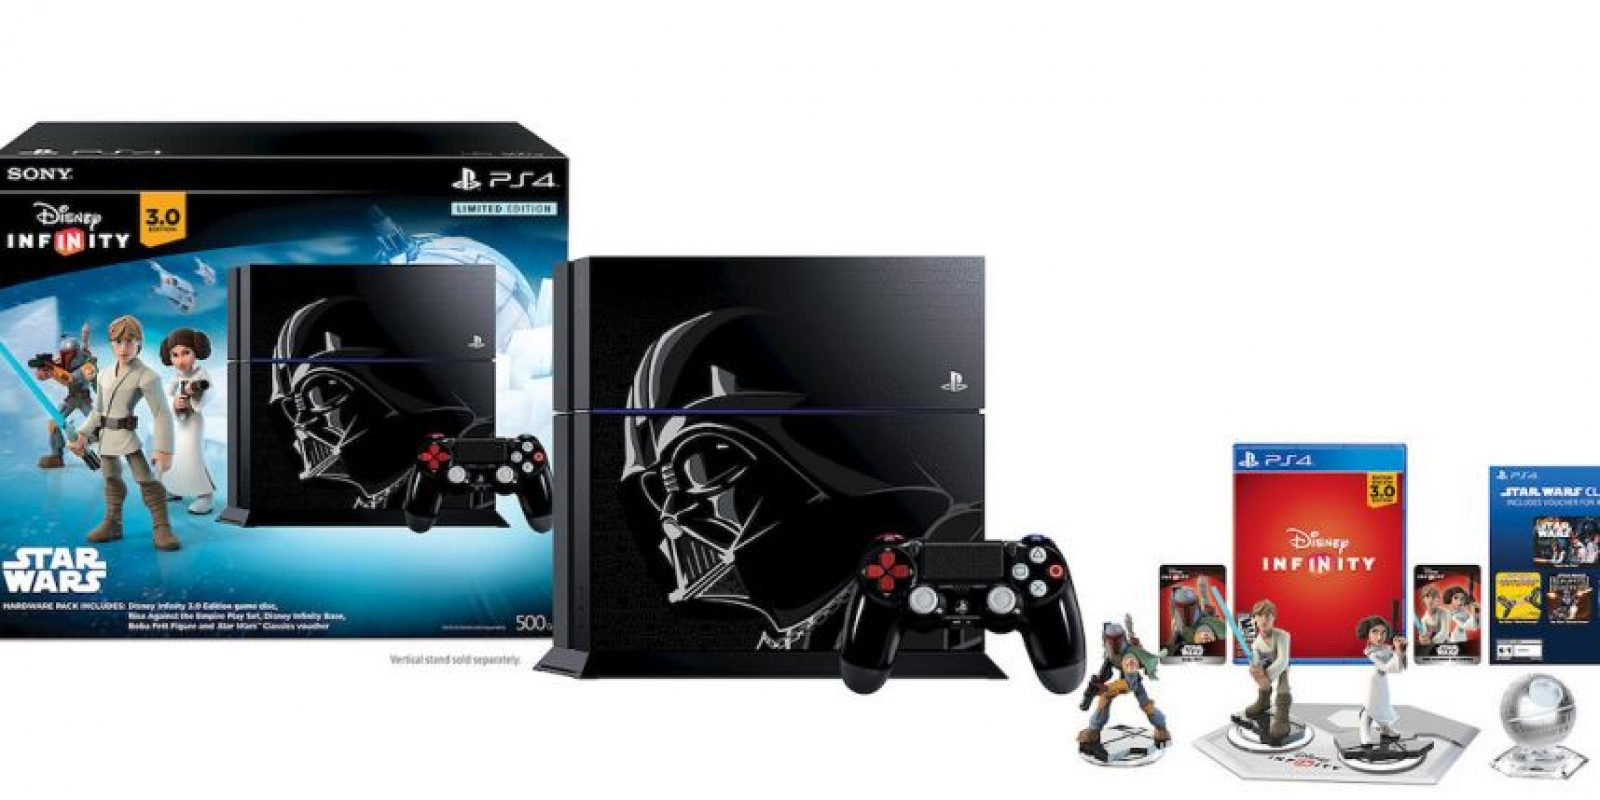 Paquete Limited Edition Disney Infinity 3.0: Star Wars PS4 de 500GB en 399 dólares. Foto: Sony